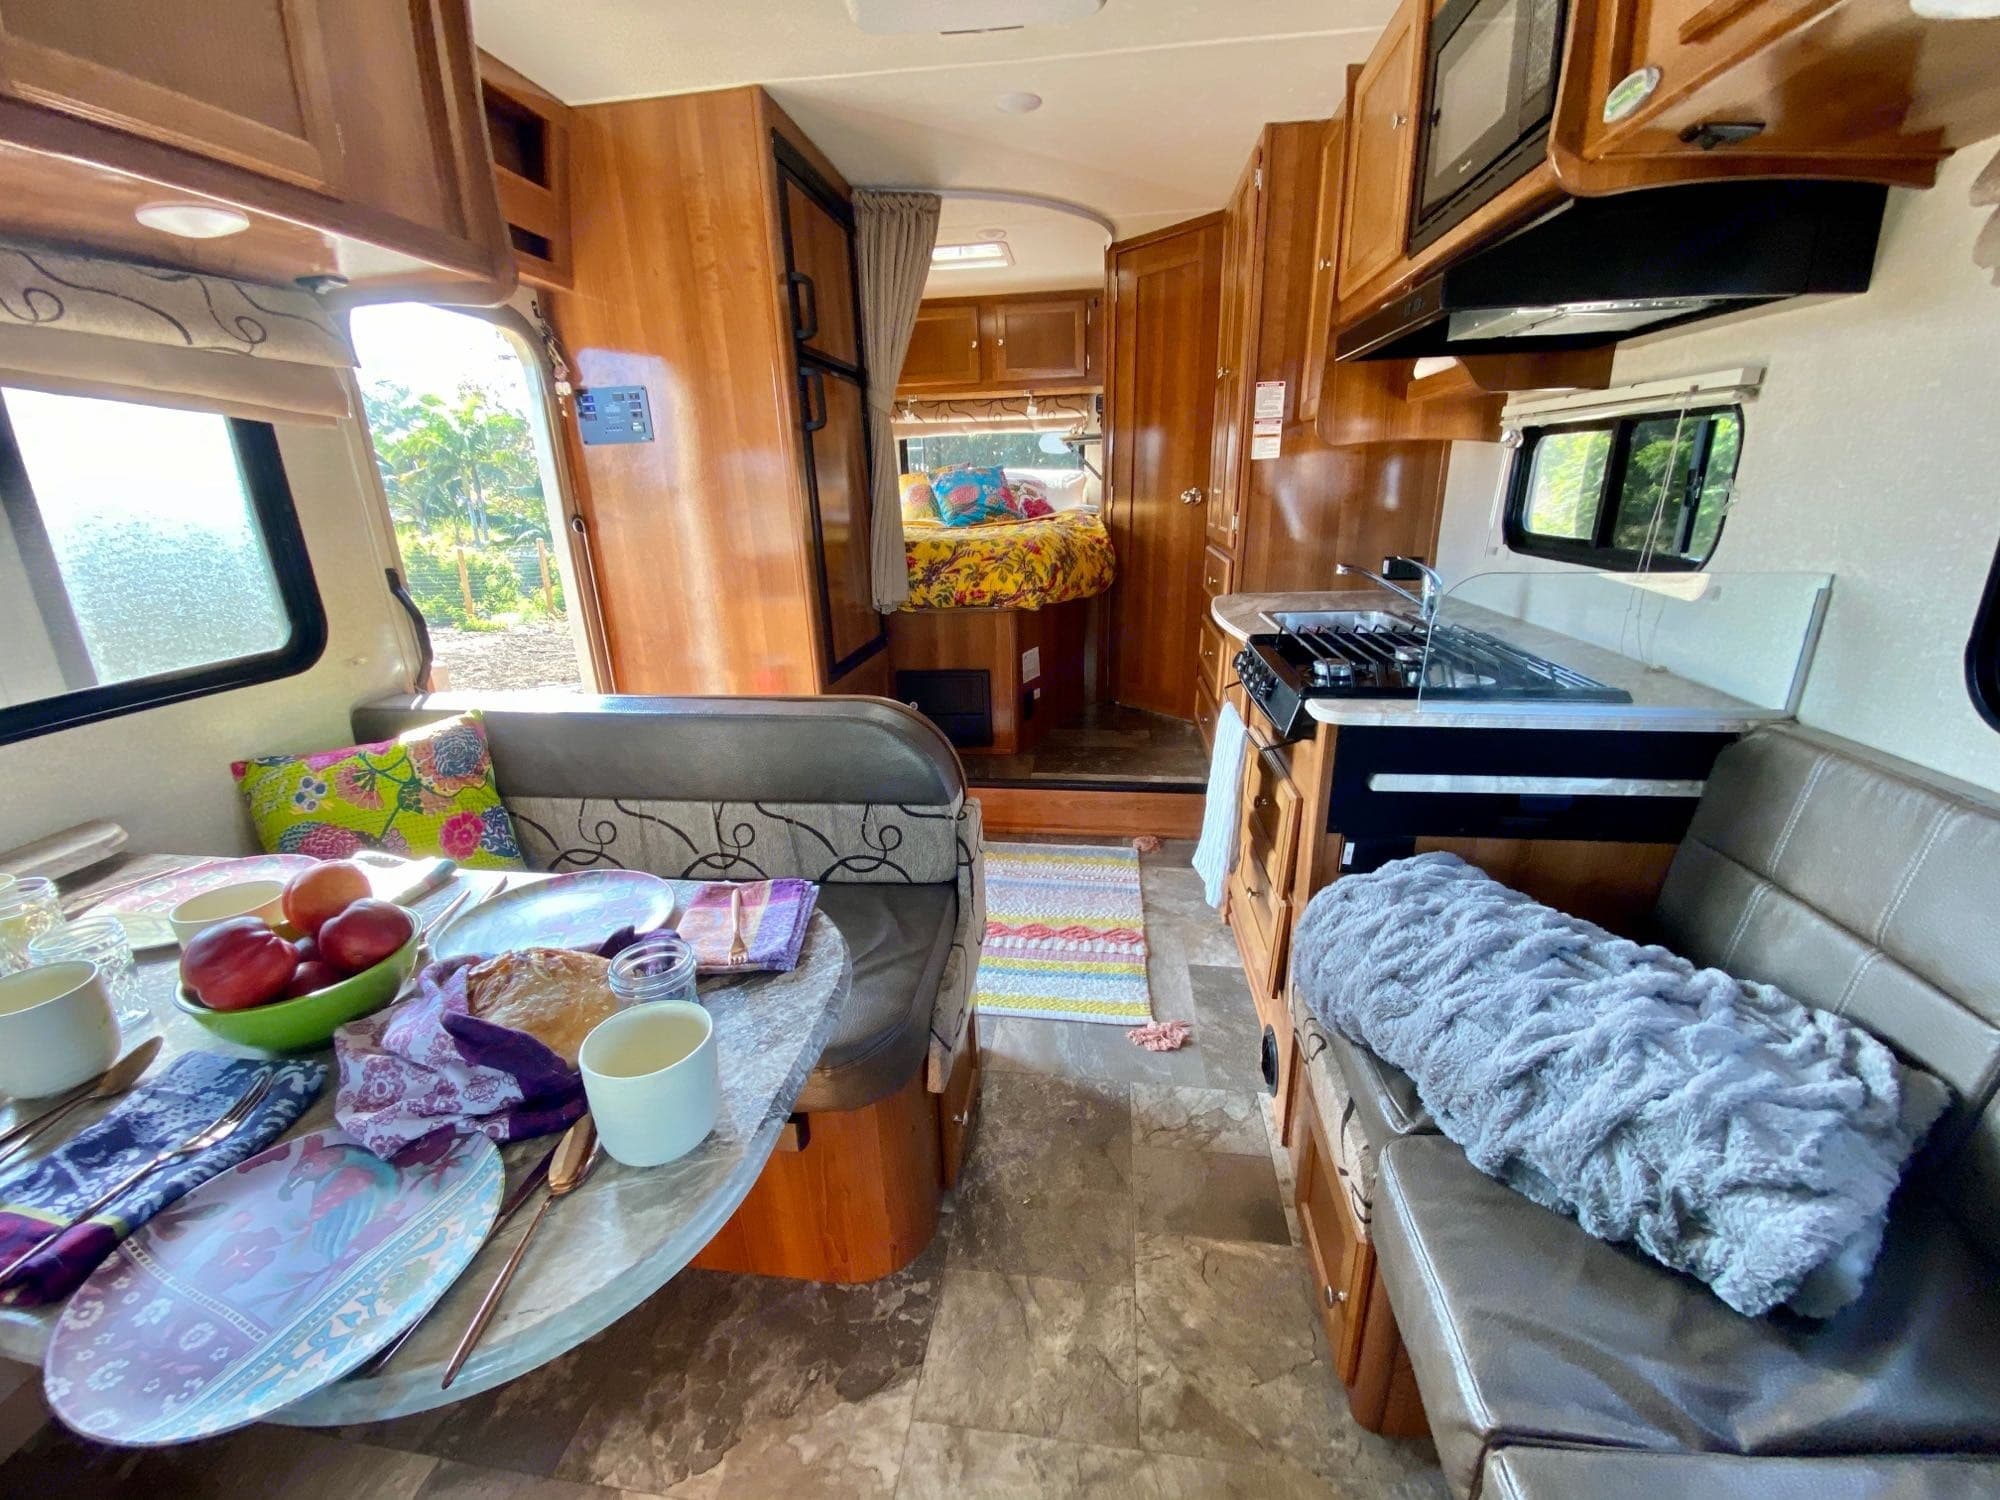 Dining table (left) turns into a bed, couch (right) turns into a table. Coachmen Leprechaun 2019